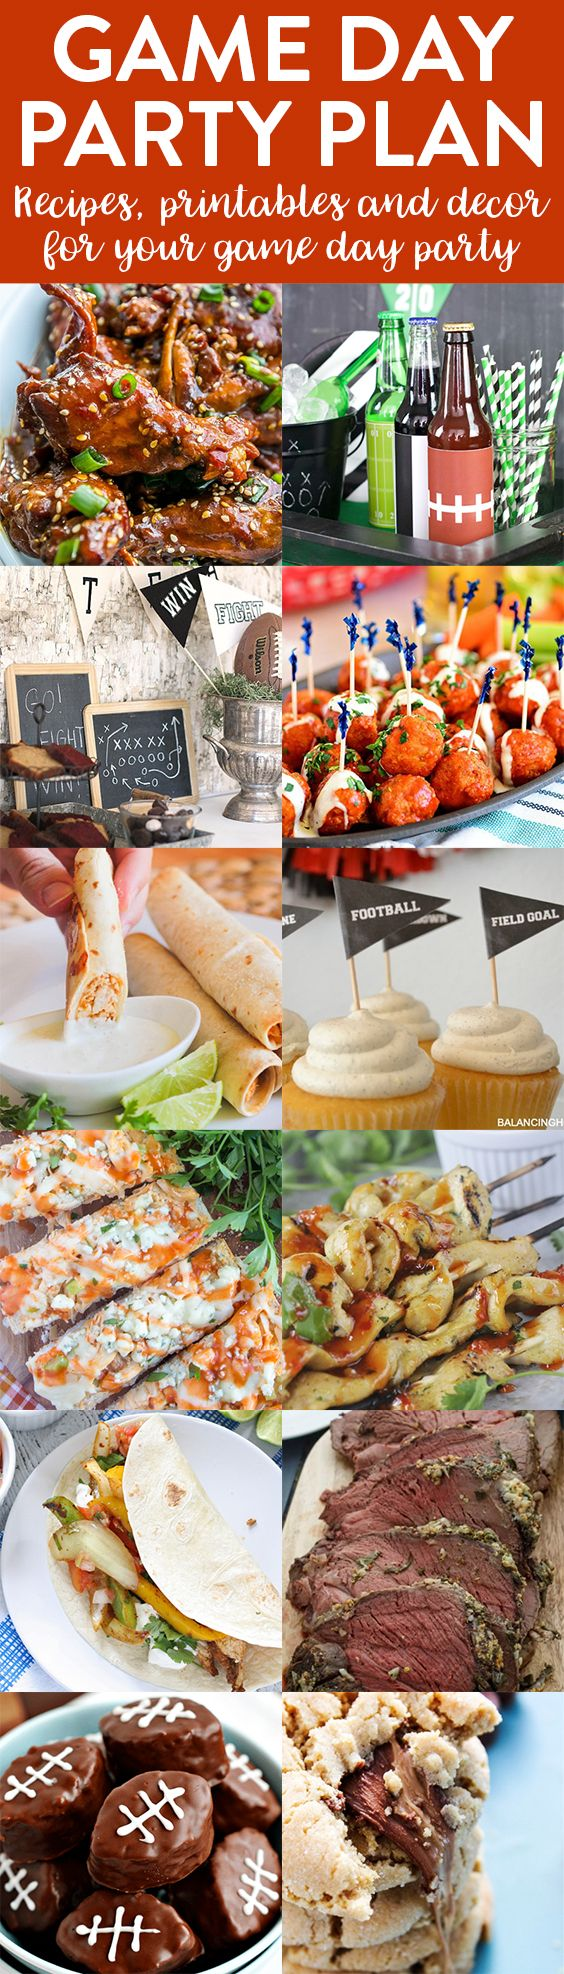 Game Day Party Plan from favorite game day snacks, meals, and desserts, plus printables and decorating ideas for your party! Get it all at TidyMom.net